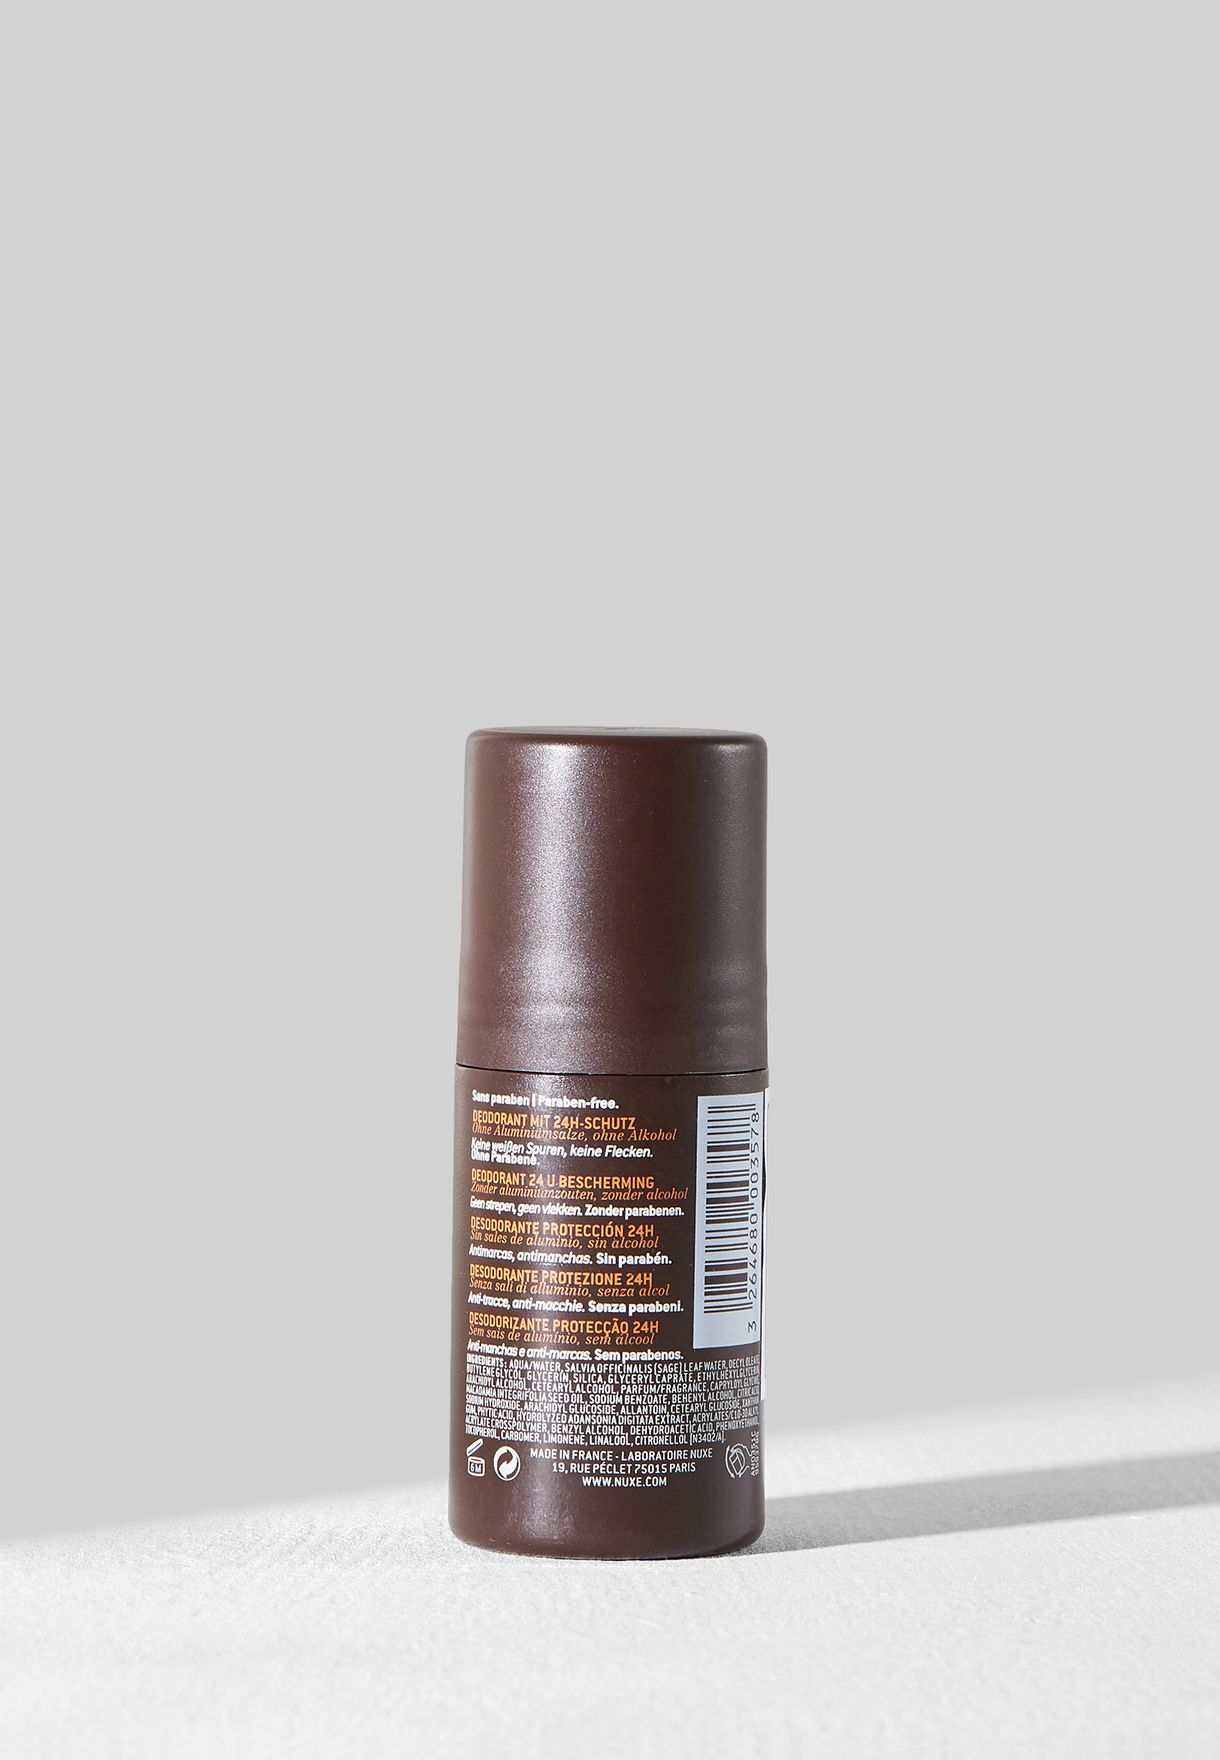 24Hr Protection Roll-On Deodorant